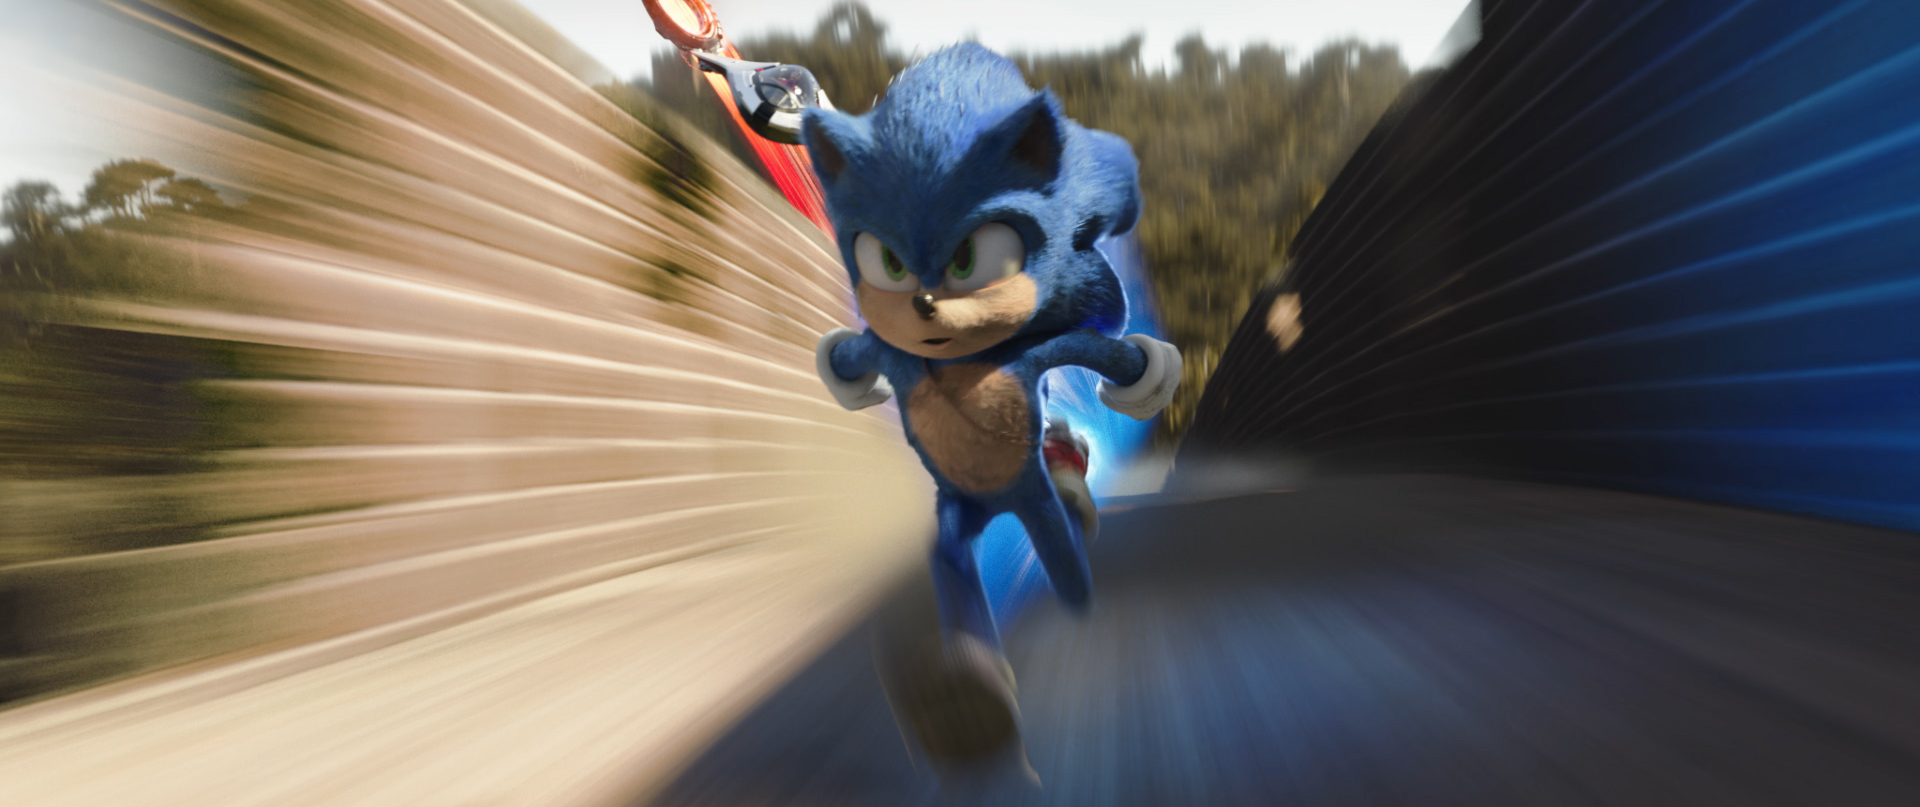 Sonic The Hedgehog February 14, 2020, Ben Schwartz